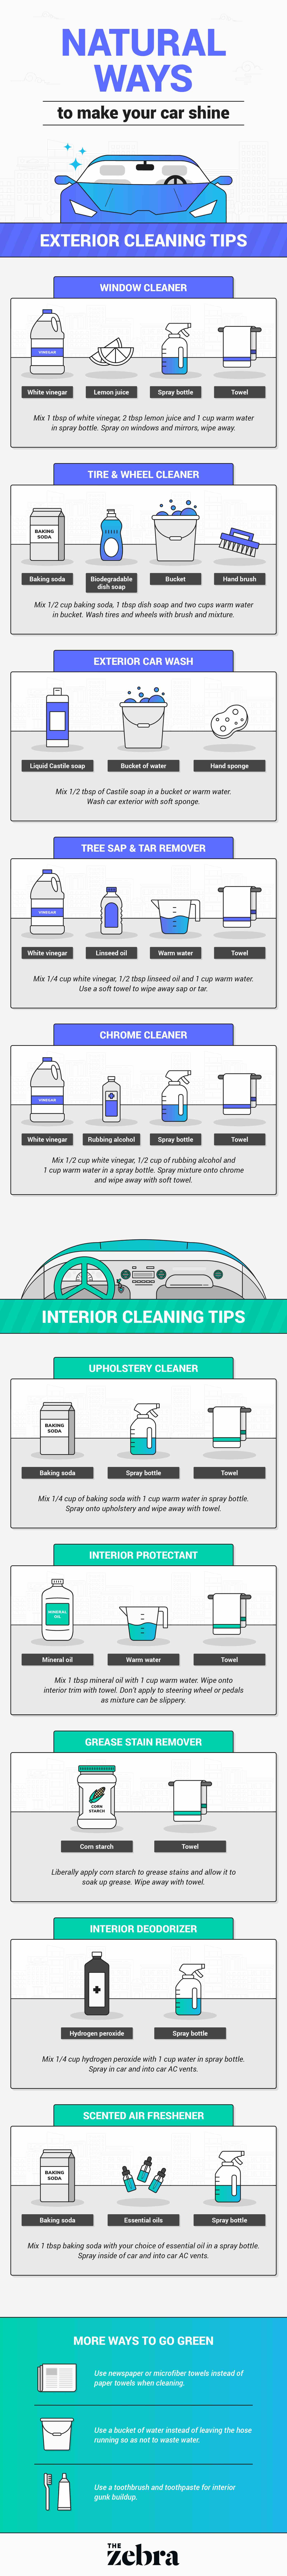 Featured image for clean your car